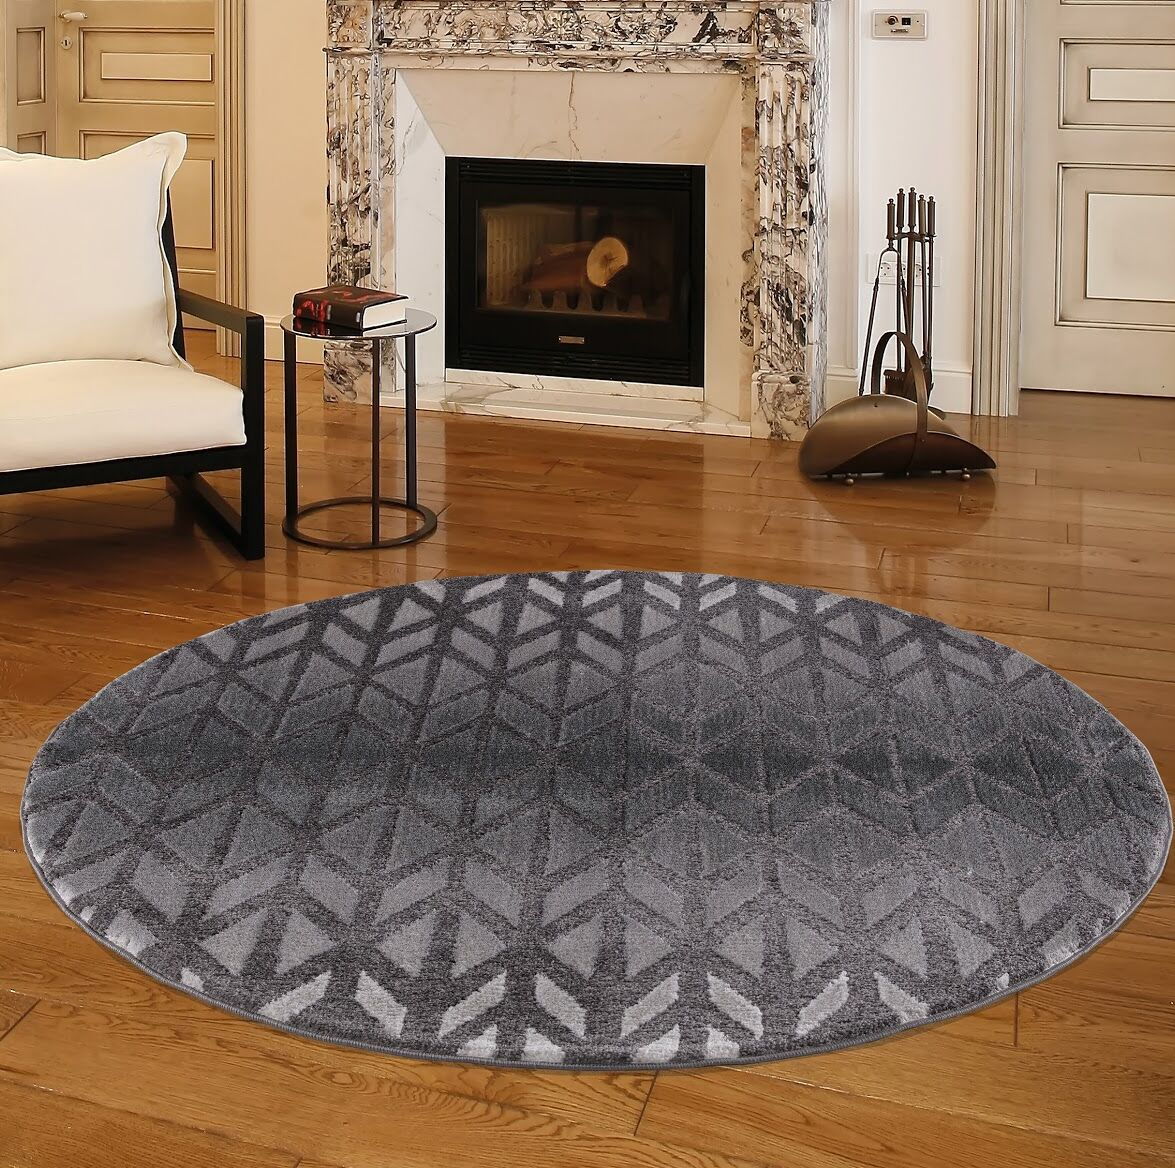 Nickols Charcoal Area Rug Rug Size: Round 5'2